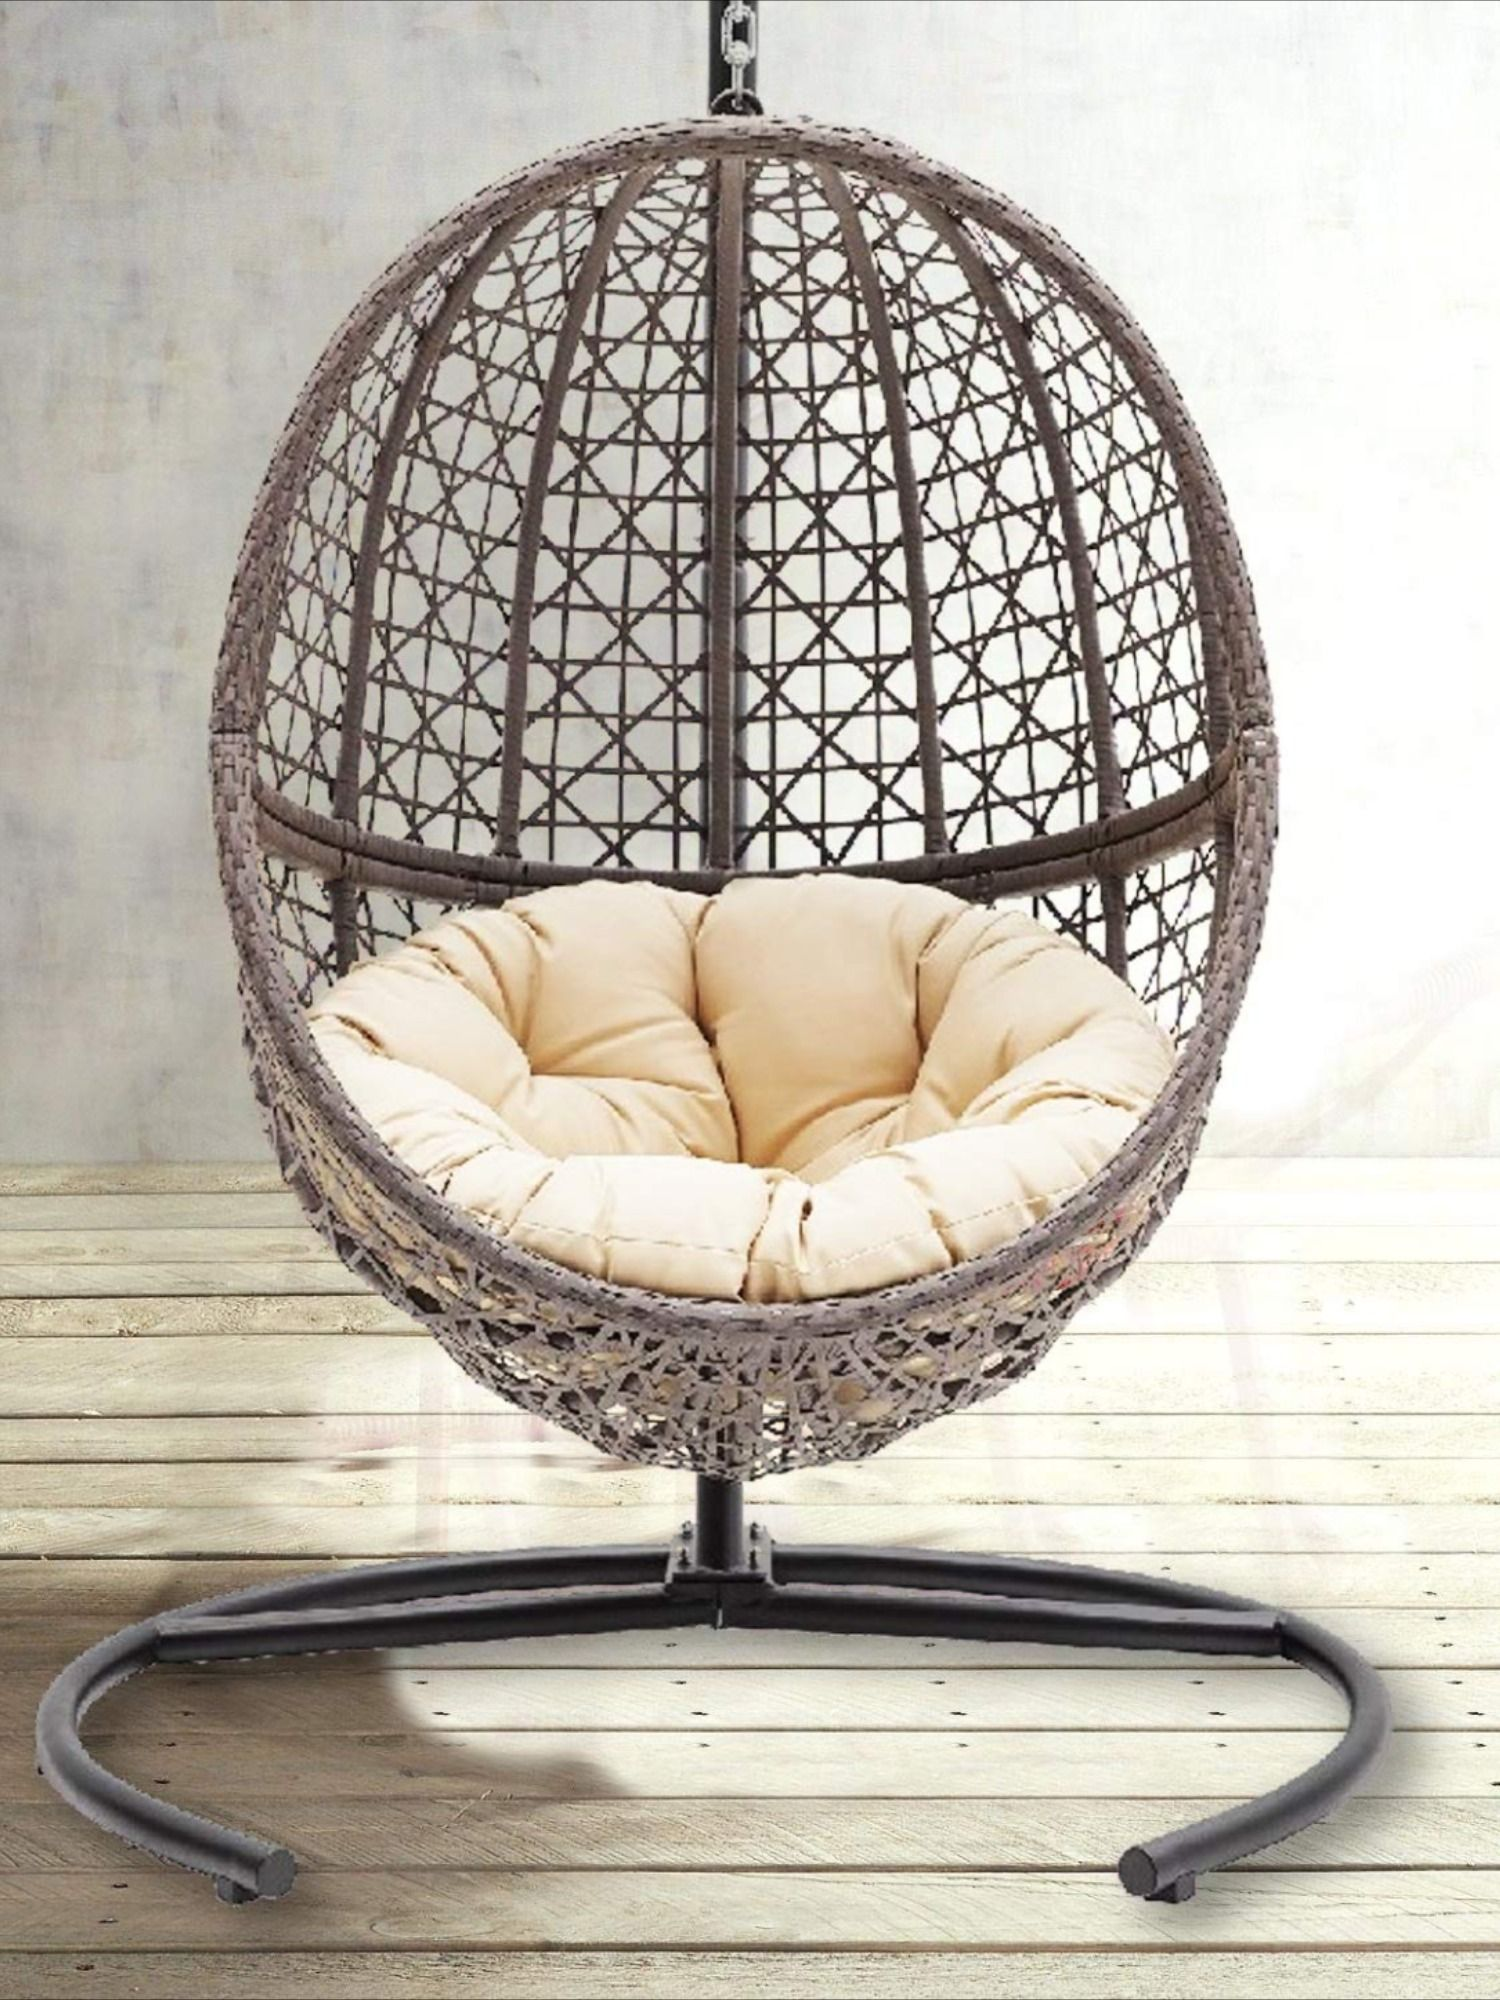 wicker swing chair on wicker hanging egg chair swing with tan tufted cushion and stand diy hanging chair hanging chair hanging egg chair wicker hanging egg chair swing with tan